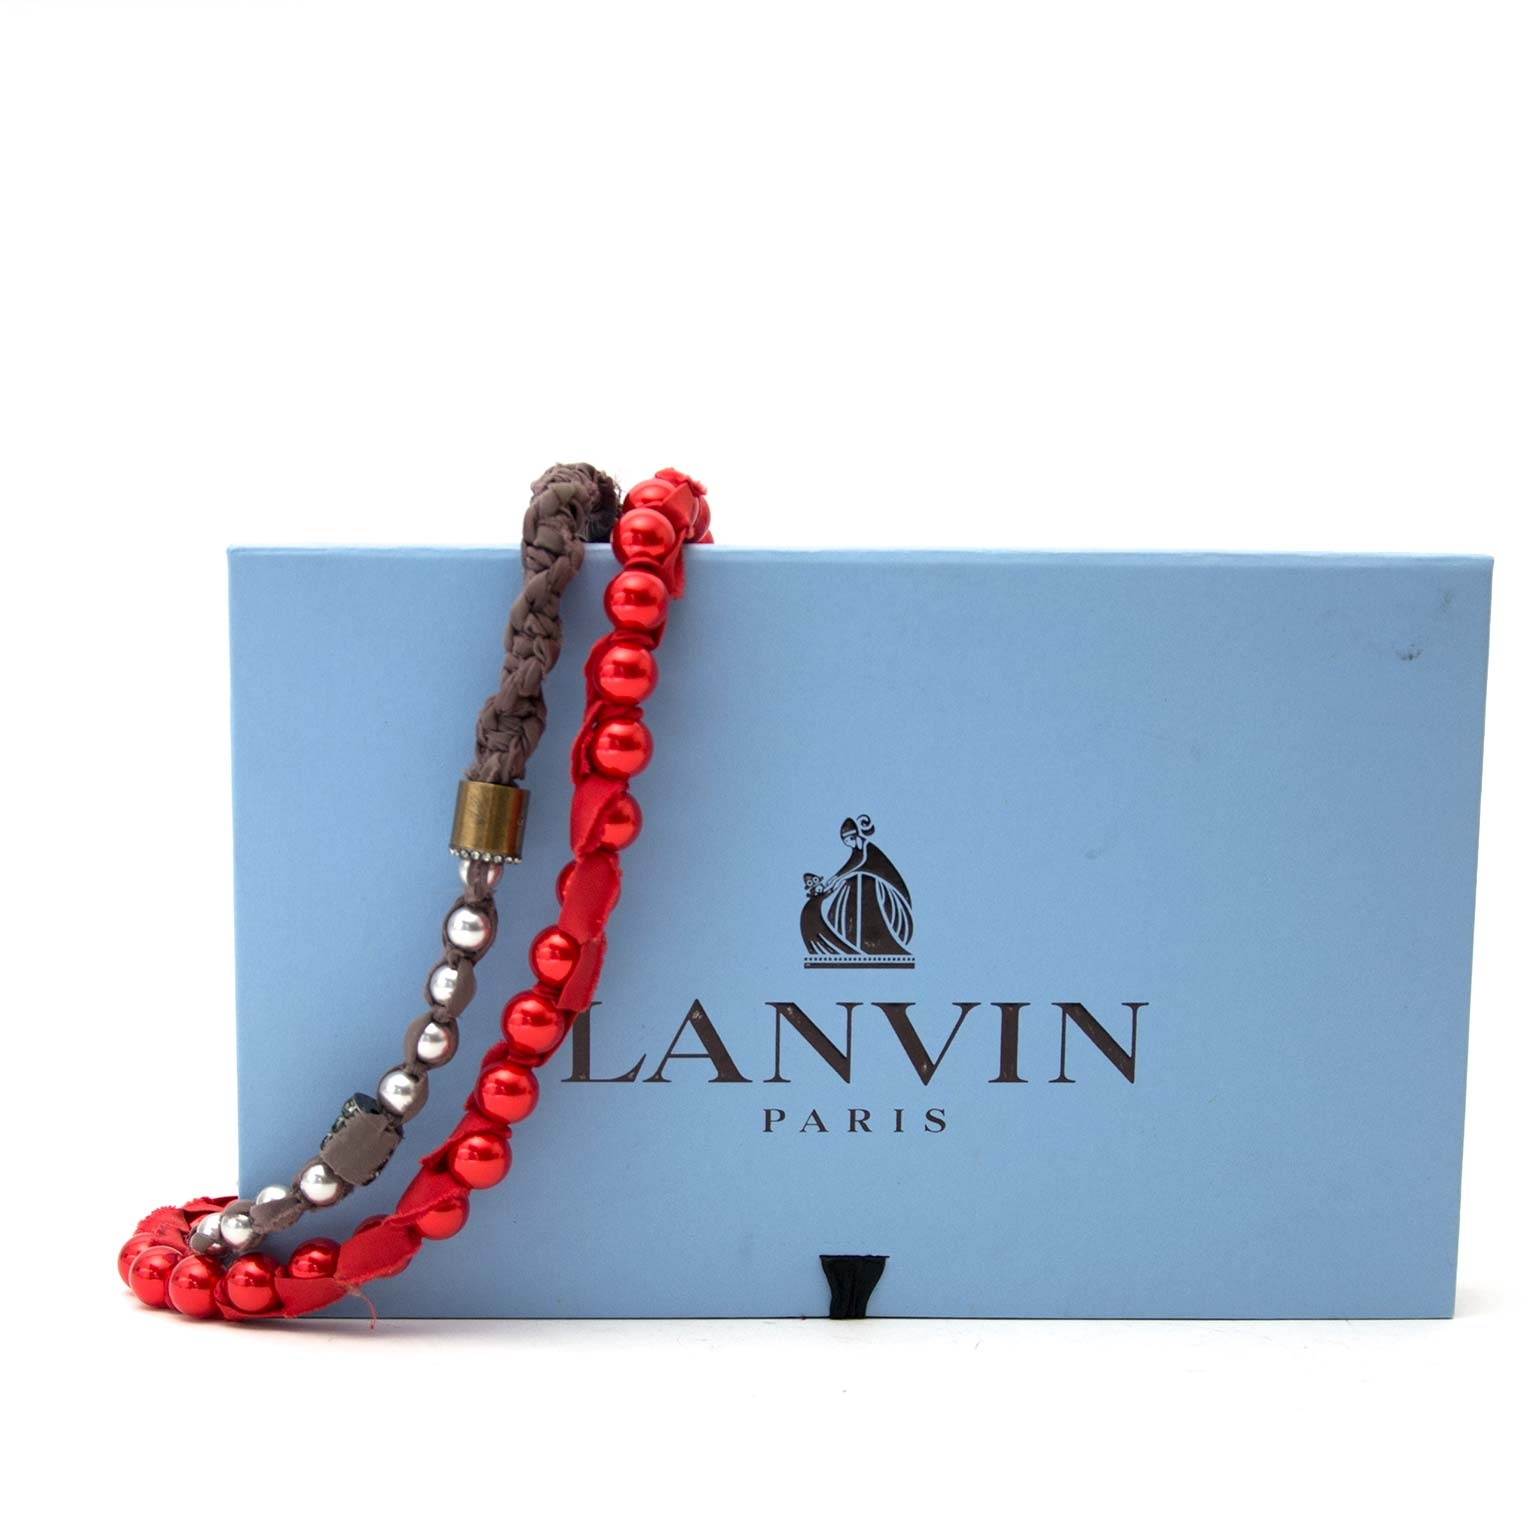 Lanvin Red & Taupe Bead Ribbon Necklace Buy authentic designer Lanvin secondhand Necklace at Labellov at the best price. Safe and secure shopping. Koop tweedehands authentieke Lanvin halsketting bij designer webwinkel labellov.